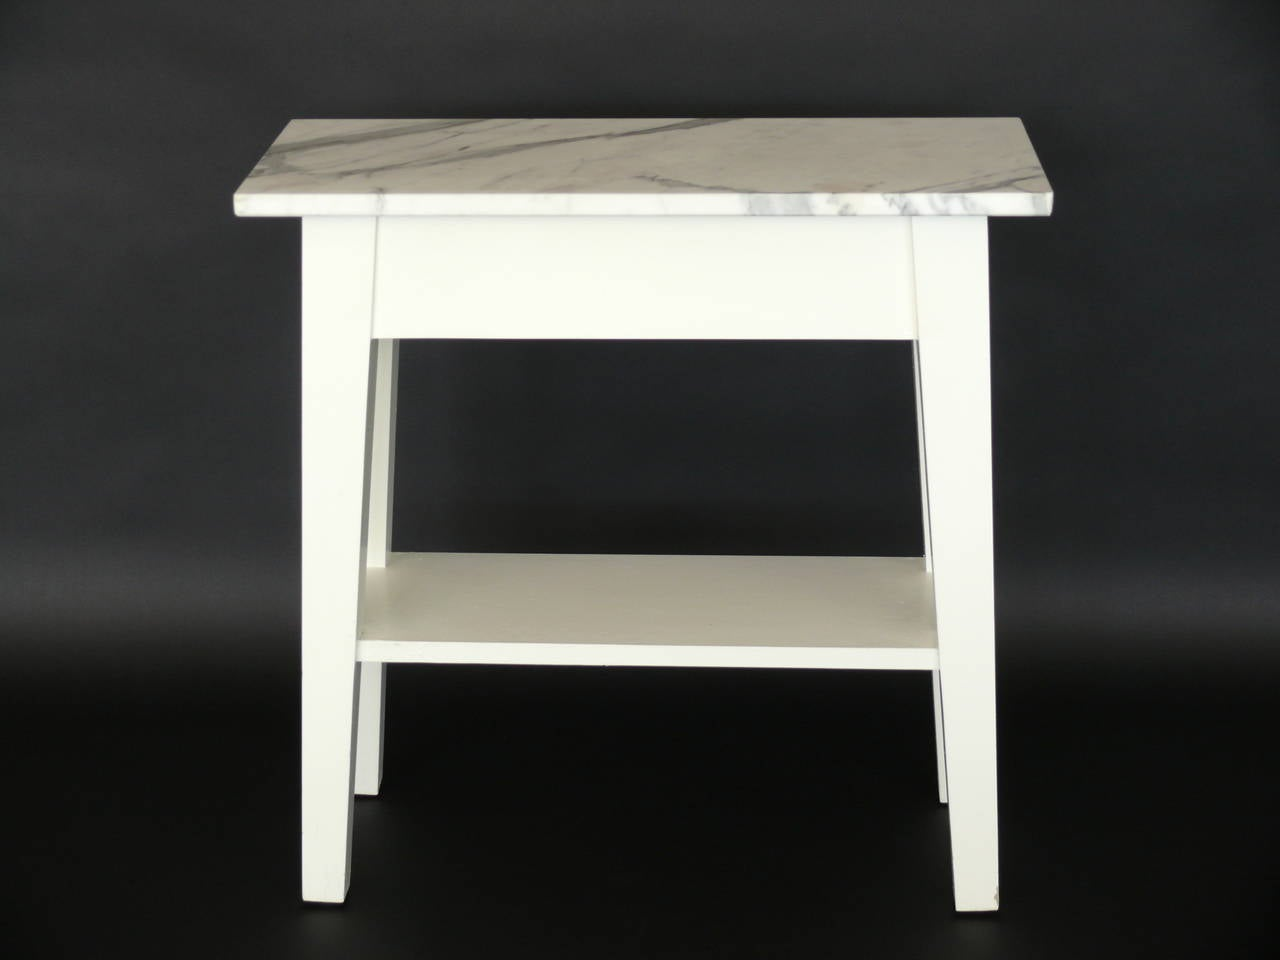 Philippe starck end table at 1stdibs for Philippe starck tables